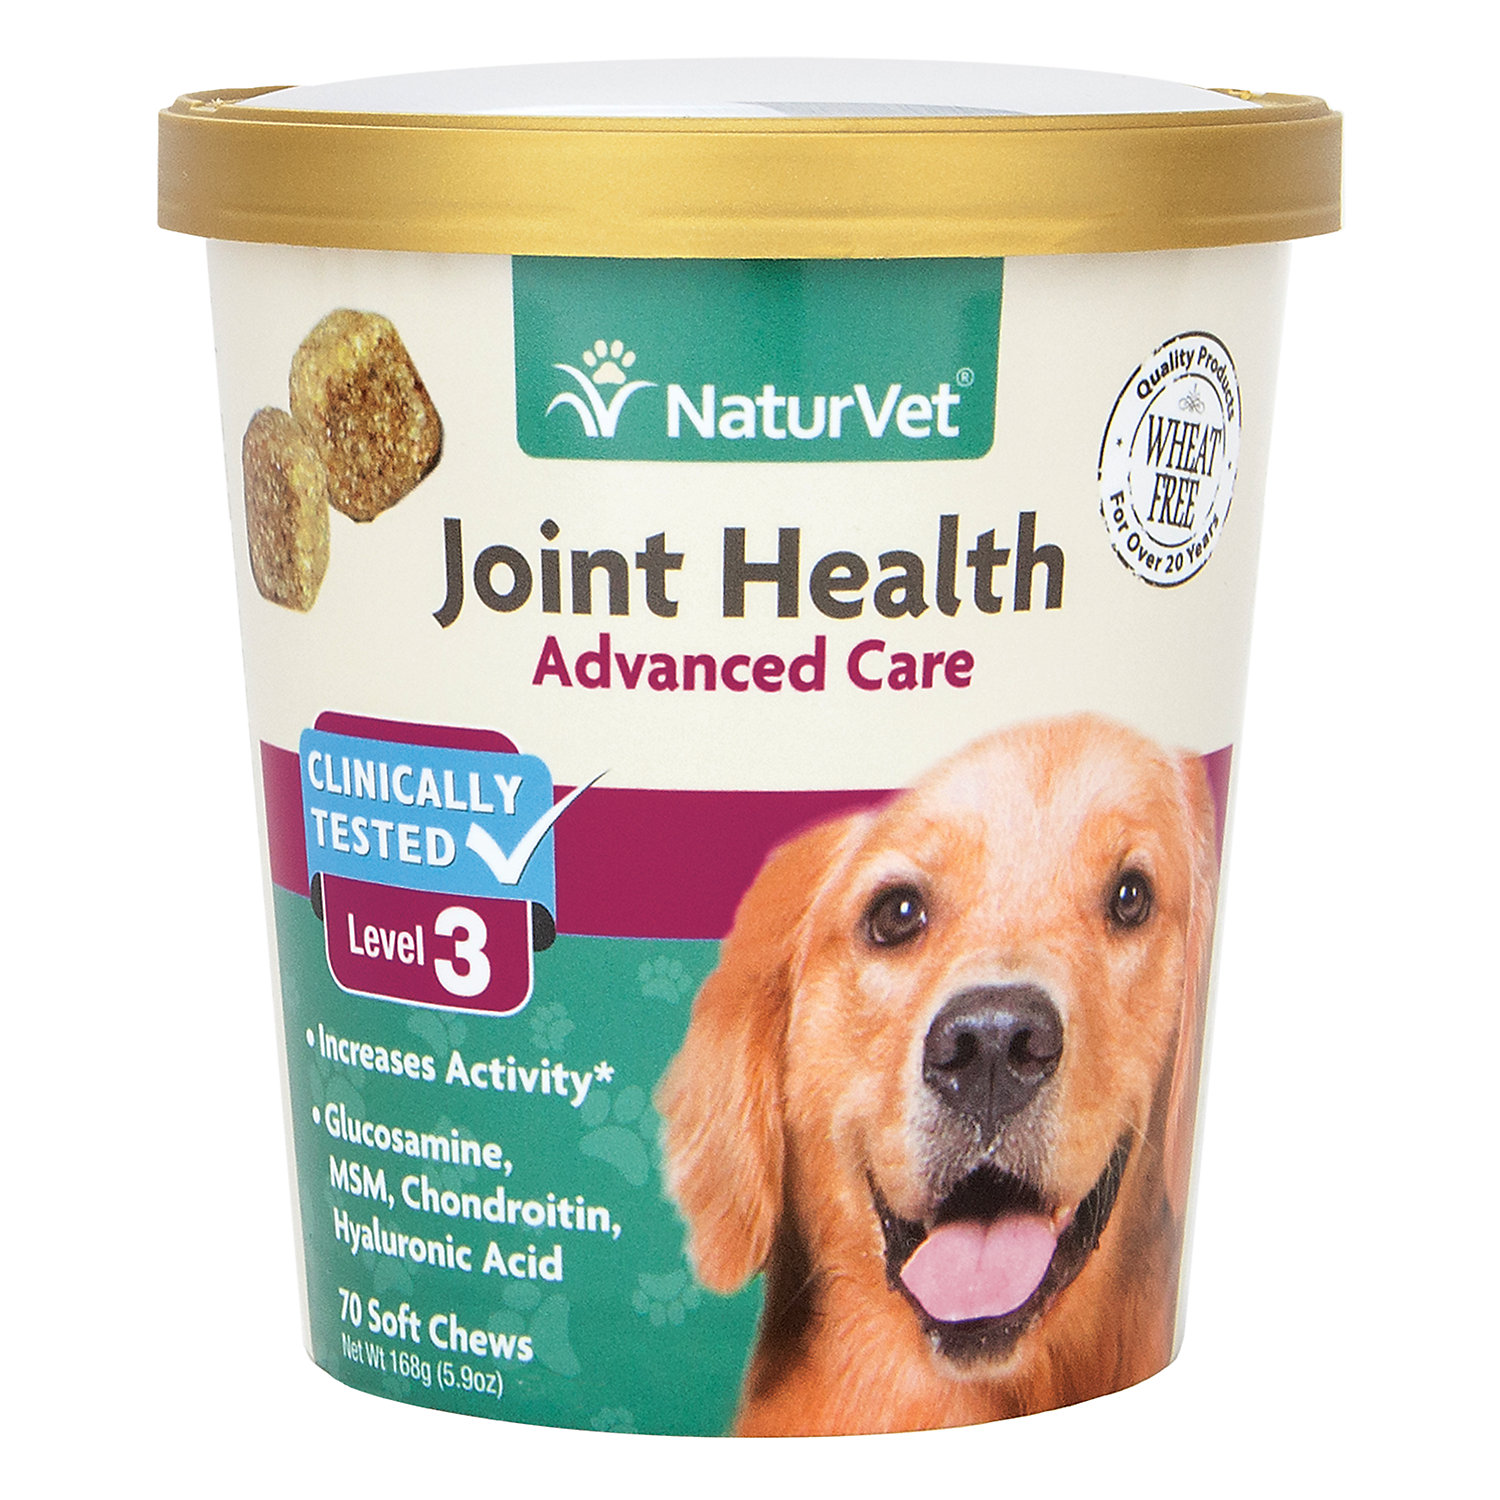 NaturVet Joint Health Advanced Care Dog Soft Chews, Pack of